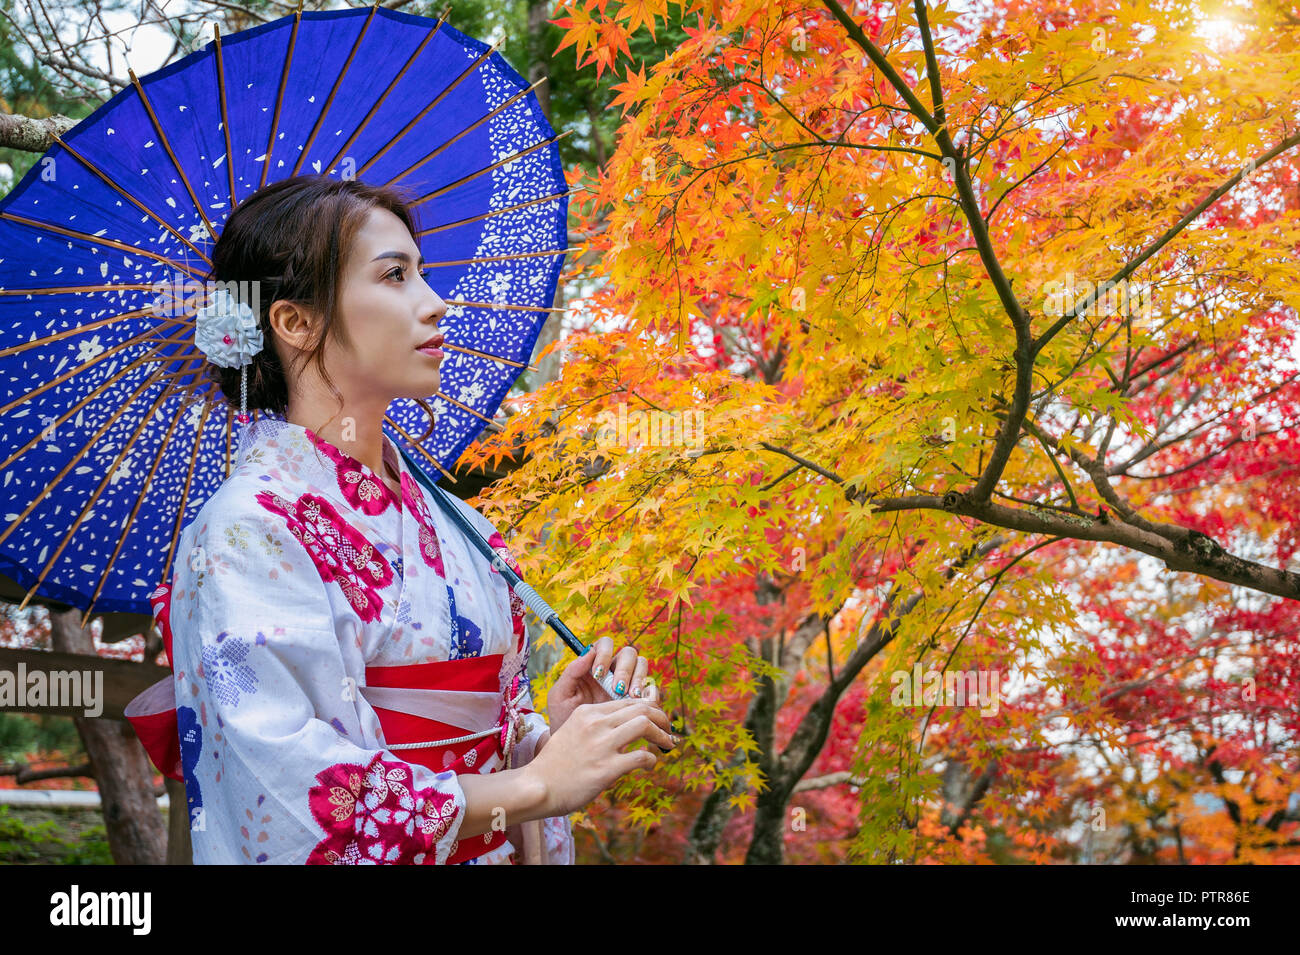 d3765f94e0907 Asian woman wearing japanese traditional kimono with umbrella in autumn  park. Japan